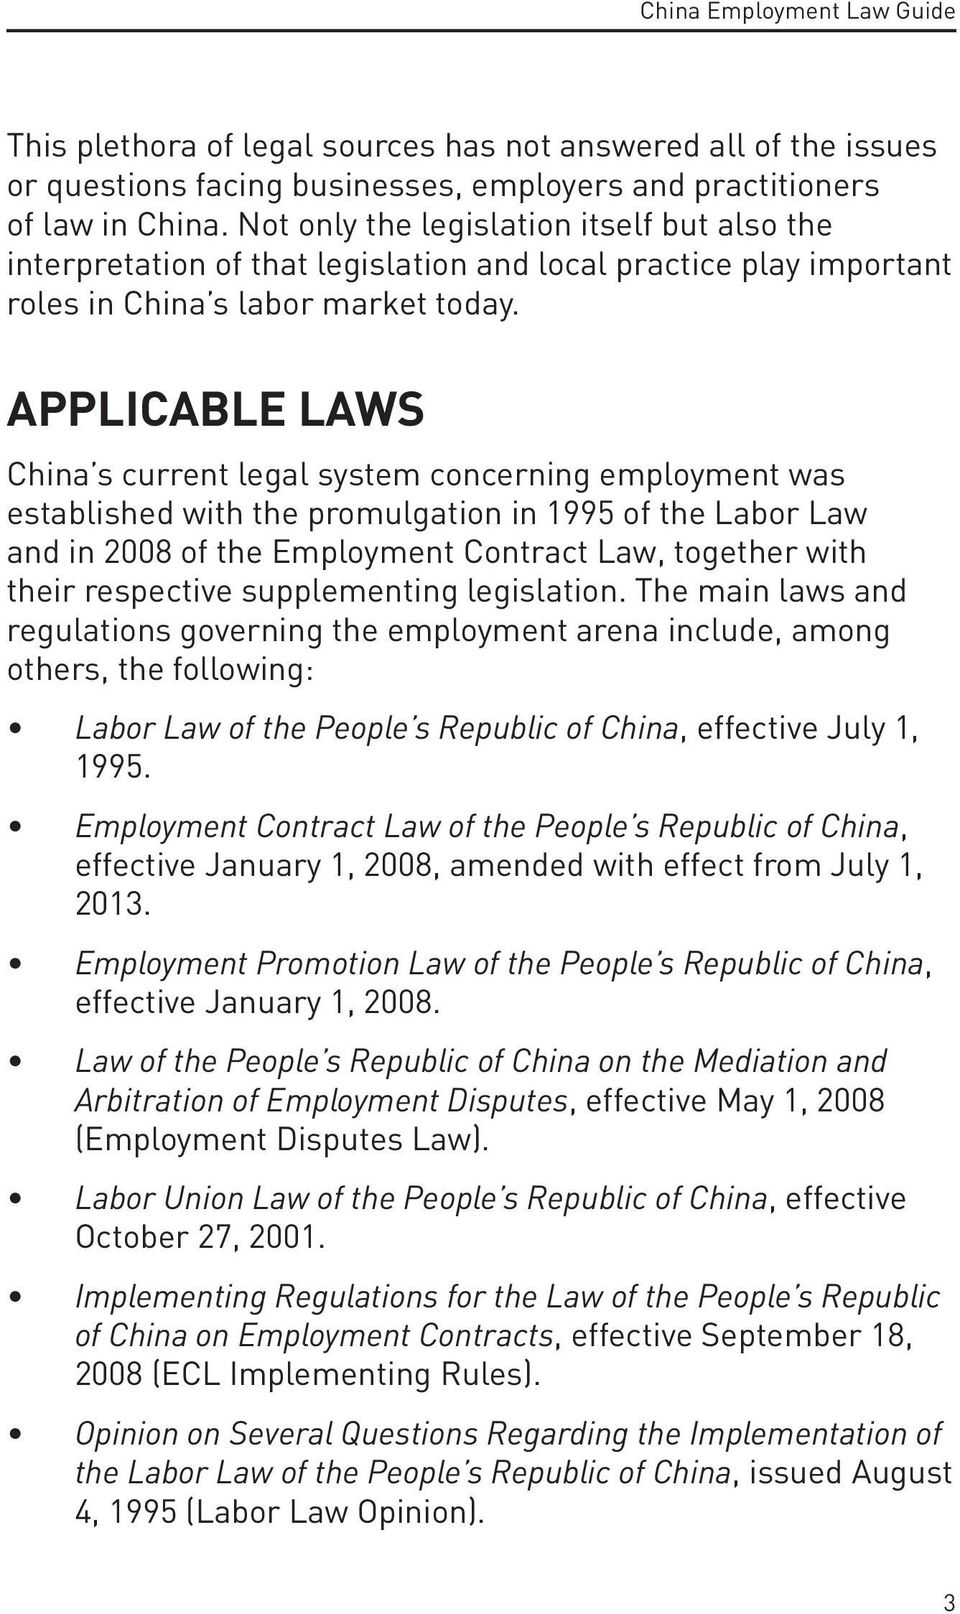 APPLICABLE LAWS China s current legal system concerning employment was established with the promulgation in 1995 of the Labor Law and in 2008 of the Employment Contract Law, together with their